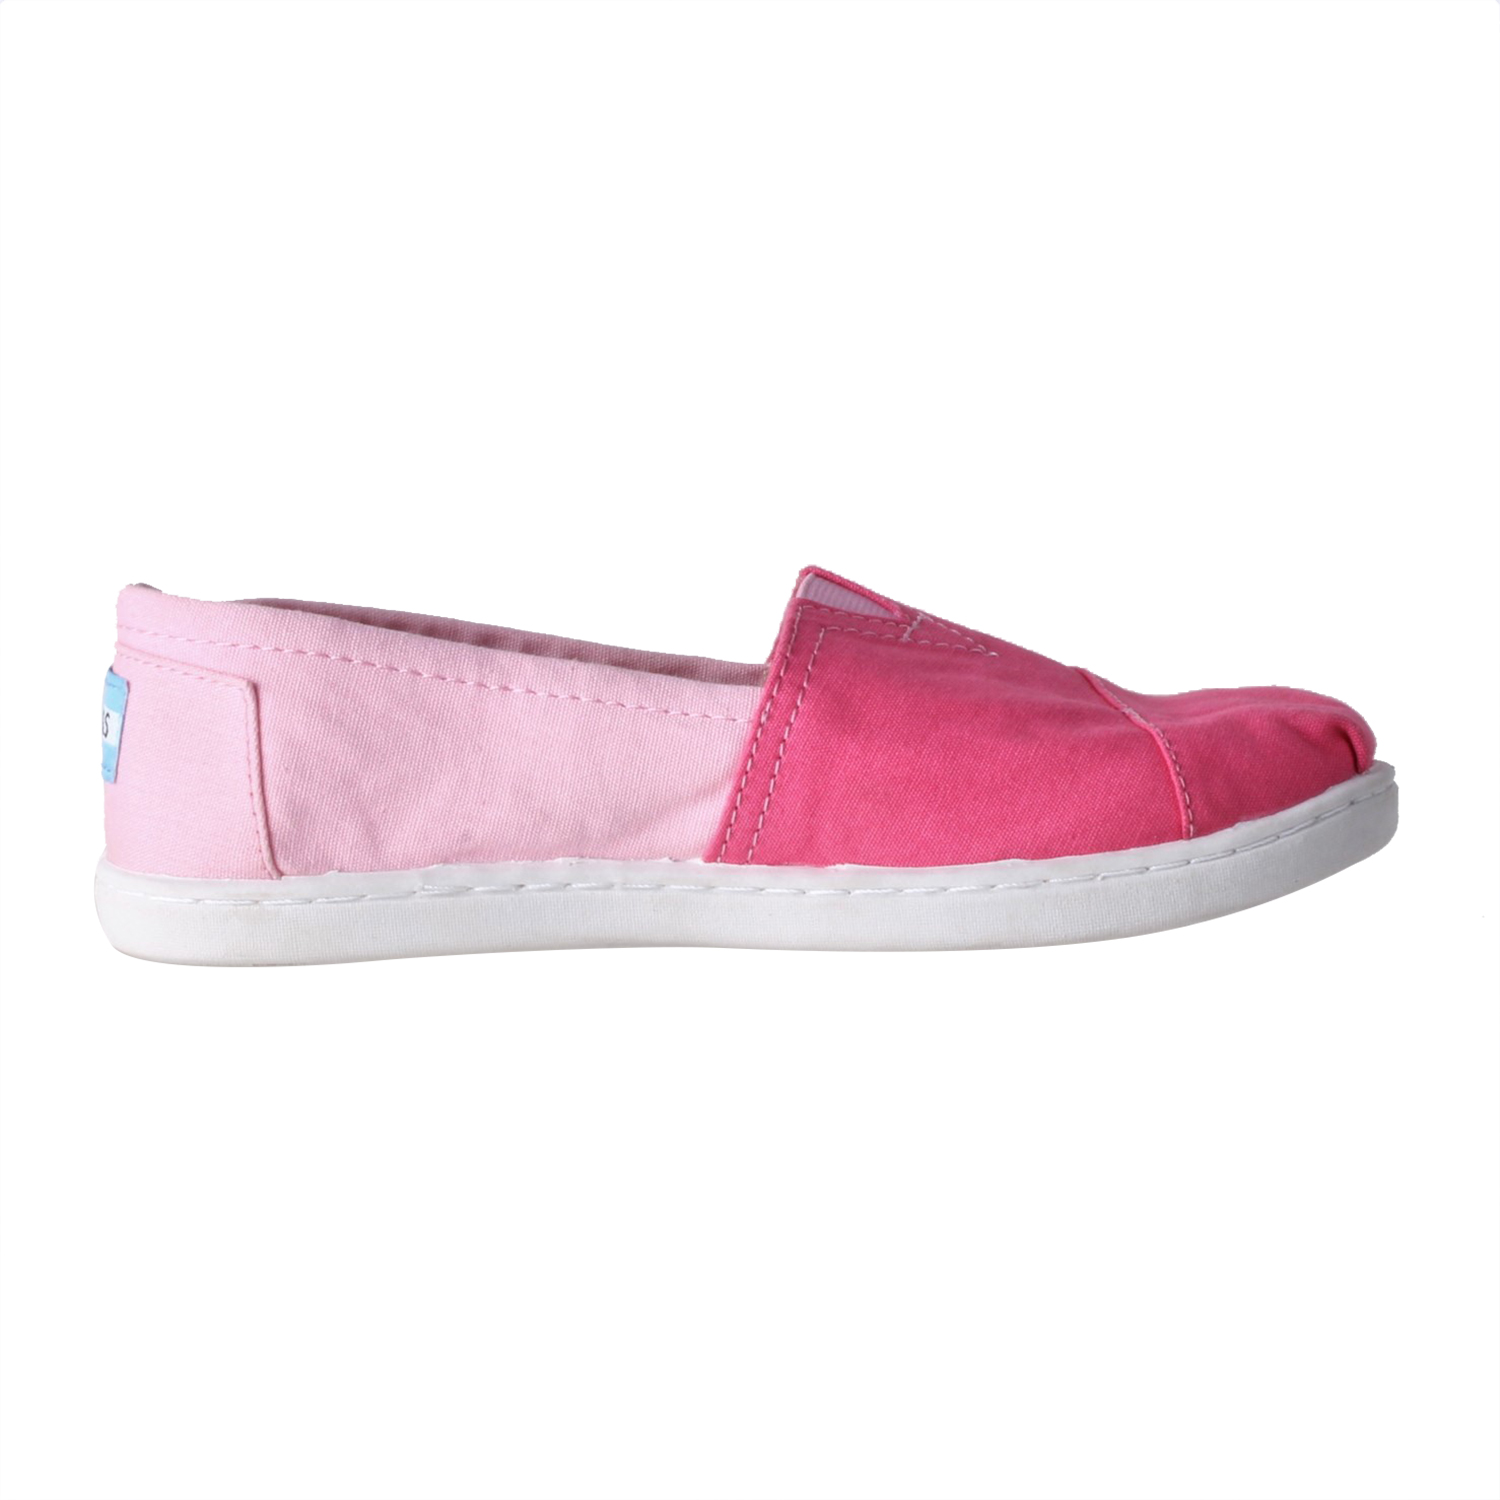 7fc6740529b -25% Factory Outlet TOMS – Παιδικά slip-ons TOMS CANVAS COLOR BLOCK  ροζ-φούξια